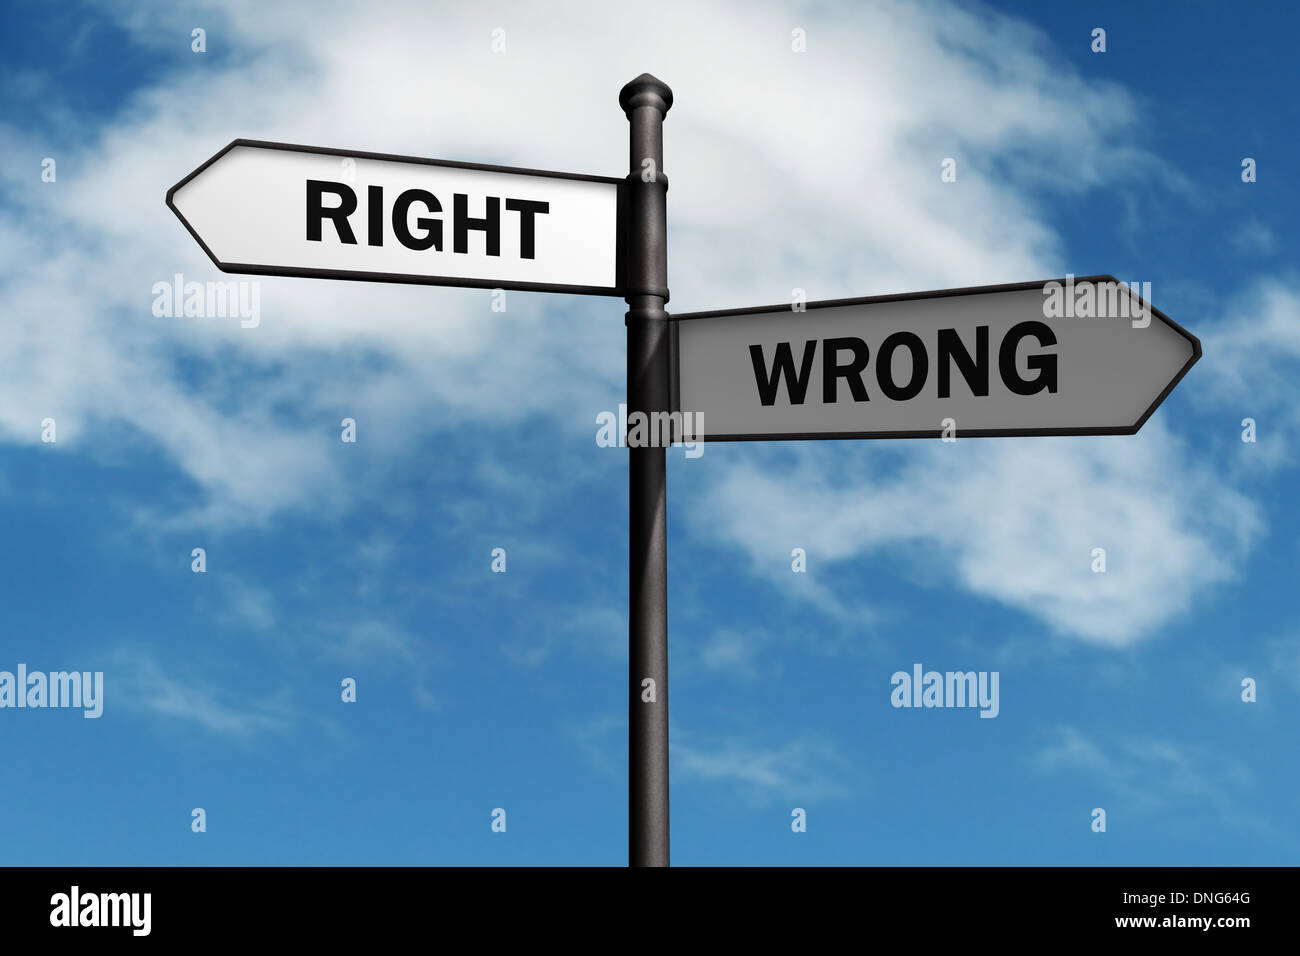 Right and wrong - Stock Image